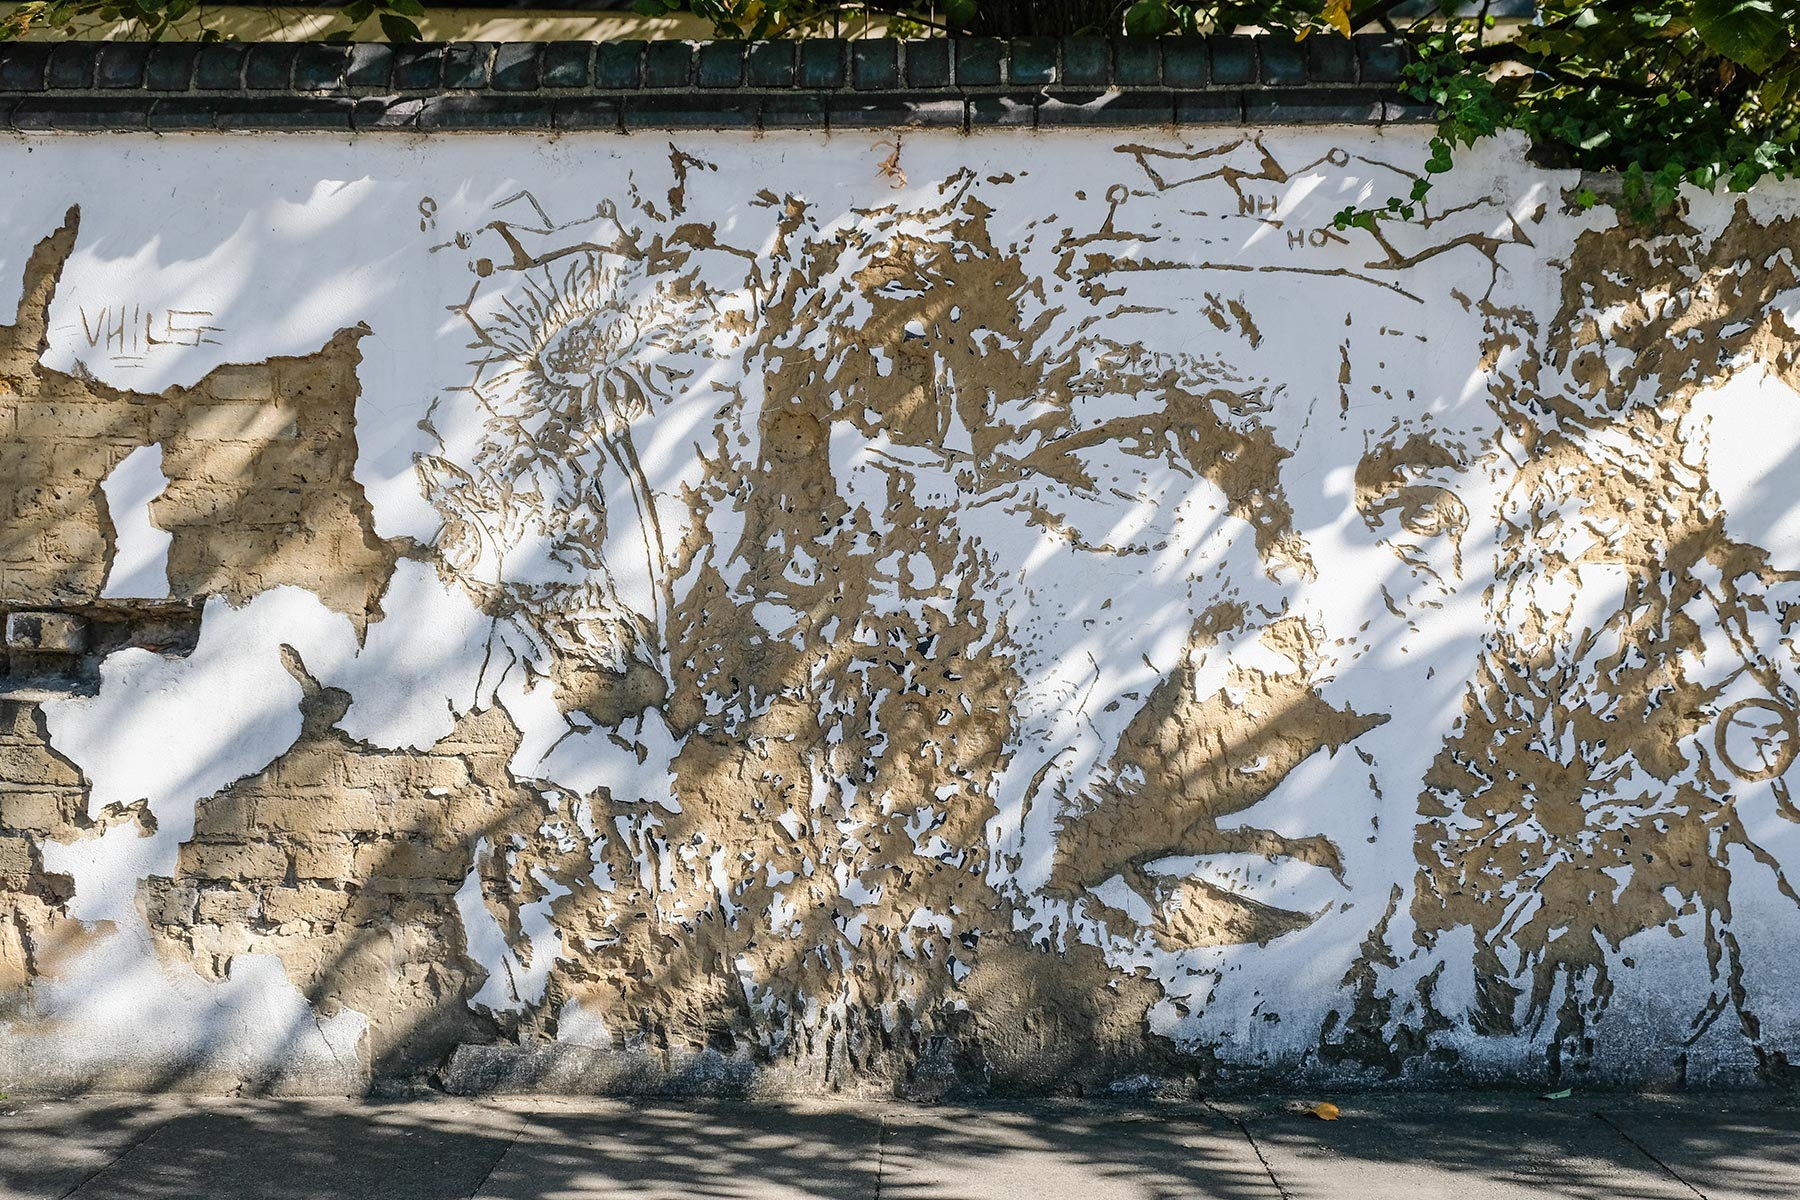 Street Art London - Vhils 'Phytology Project' - Clarkson Street, Poplar